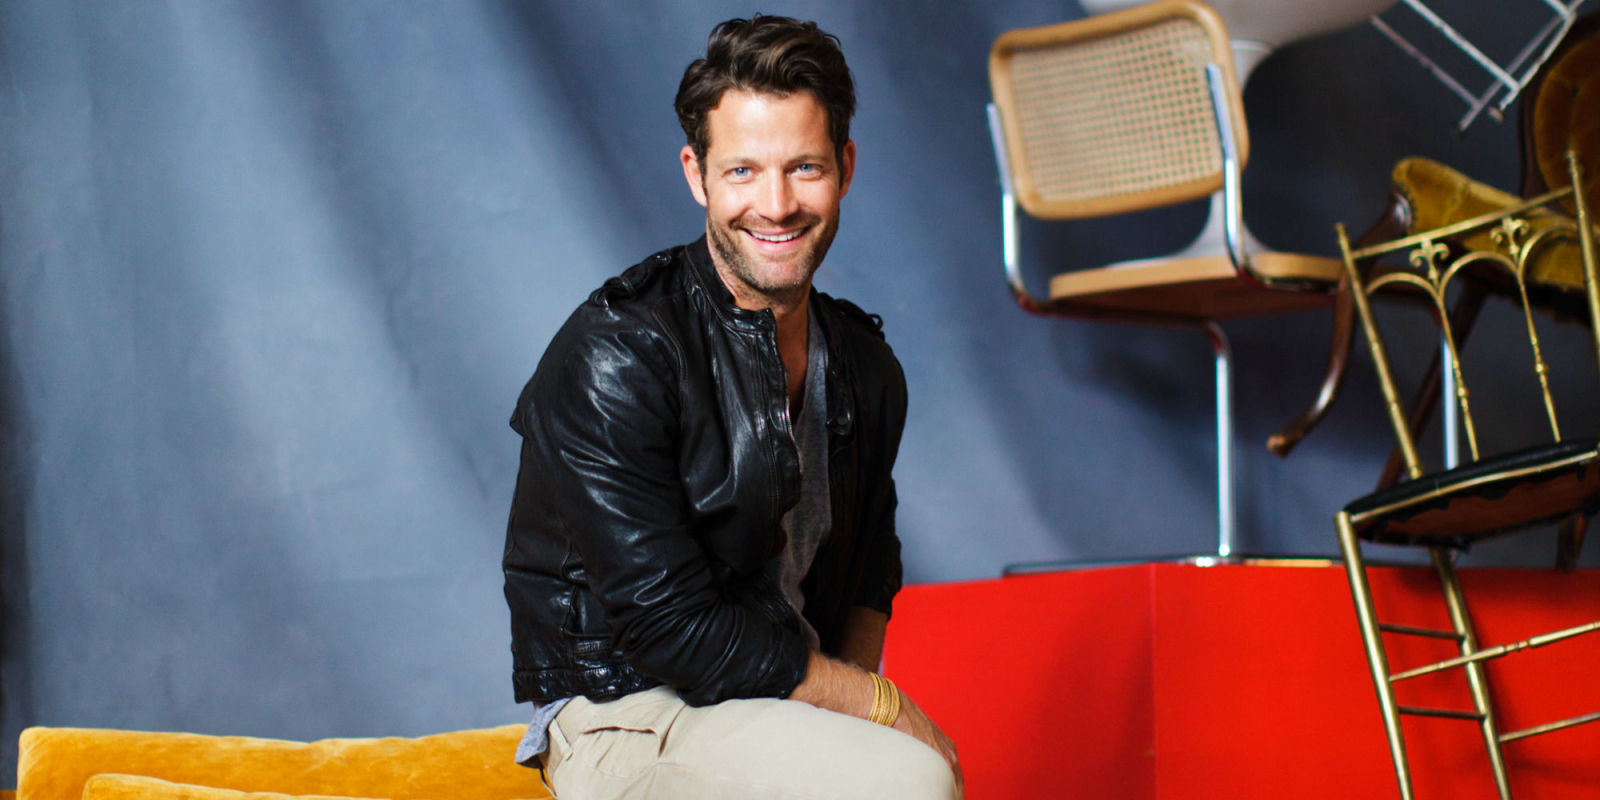 nate berkus Top 10 Best Interior Design Projects by Nate Berkus Top 10 Best Interior Design Projects by Nate Berkus 11